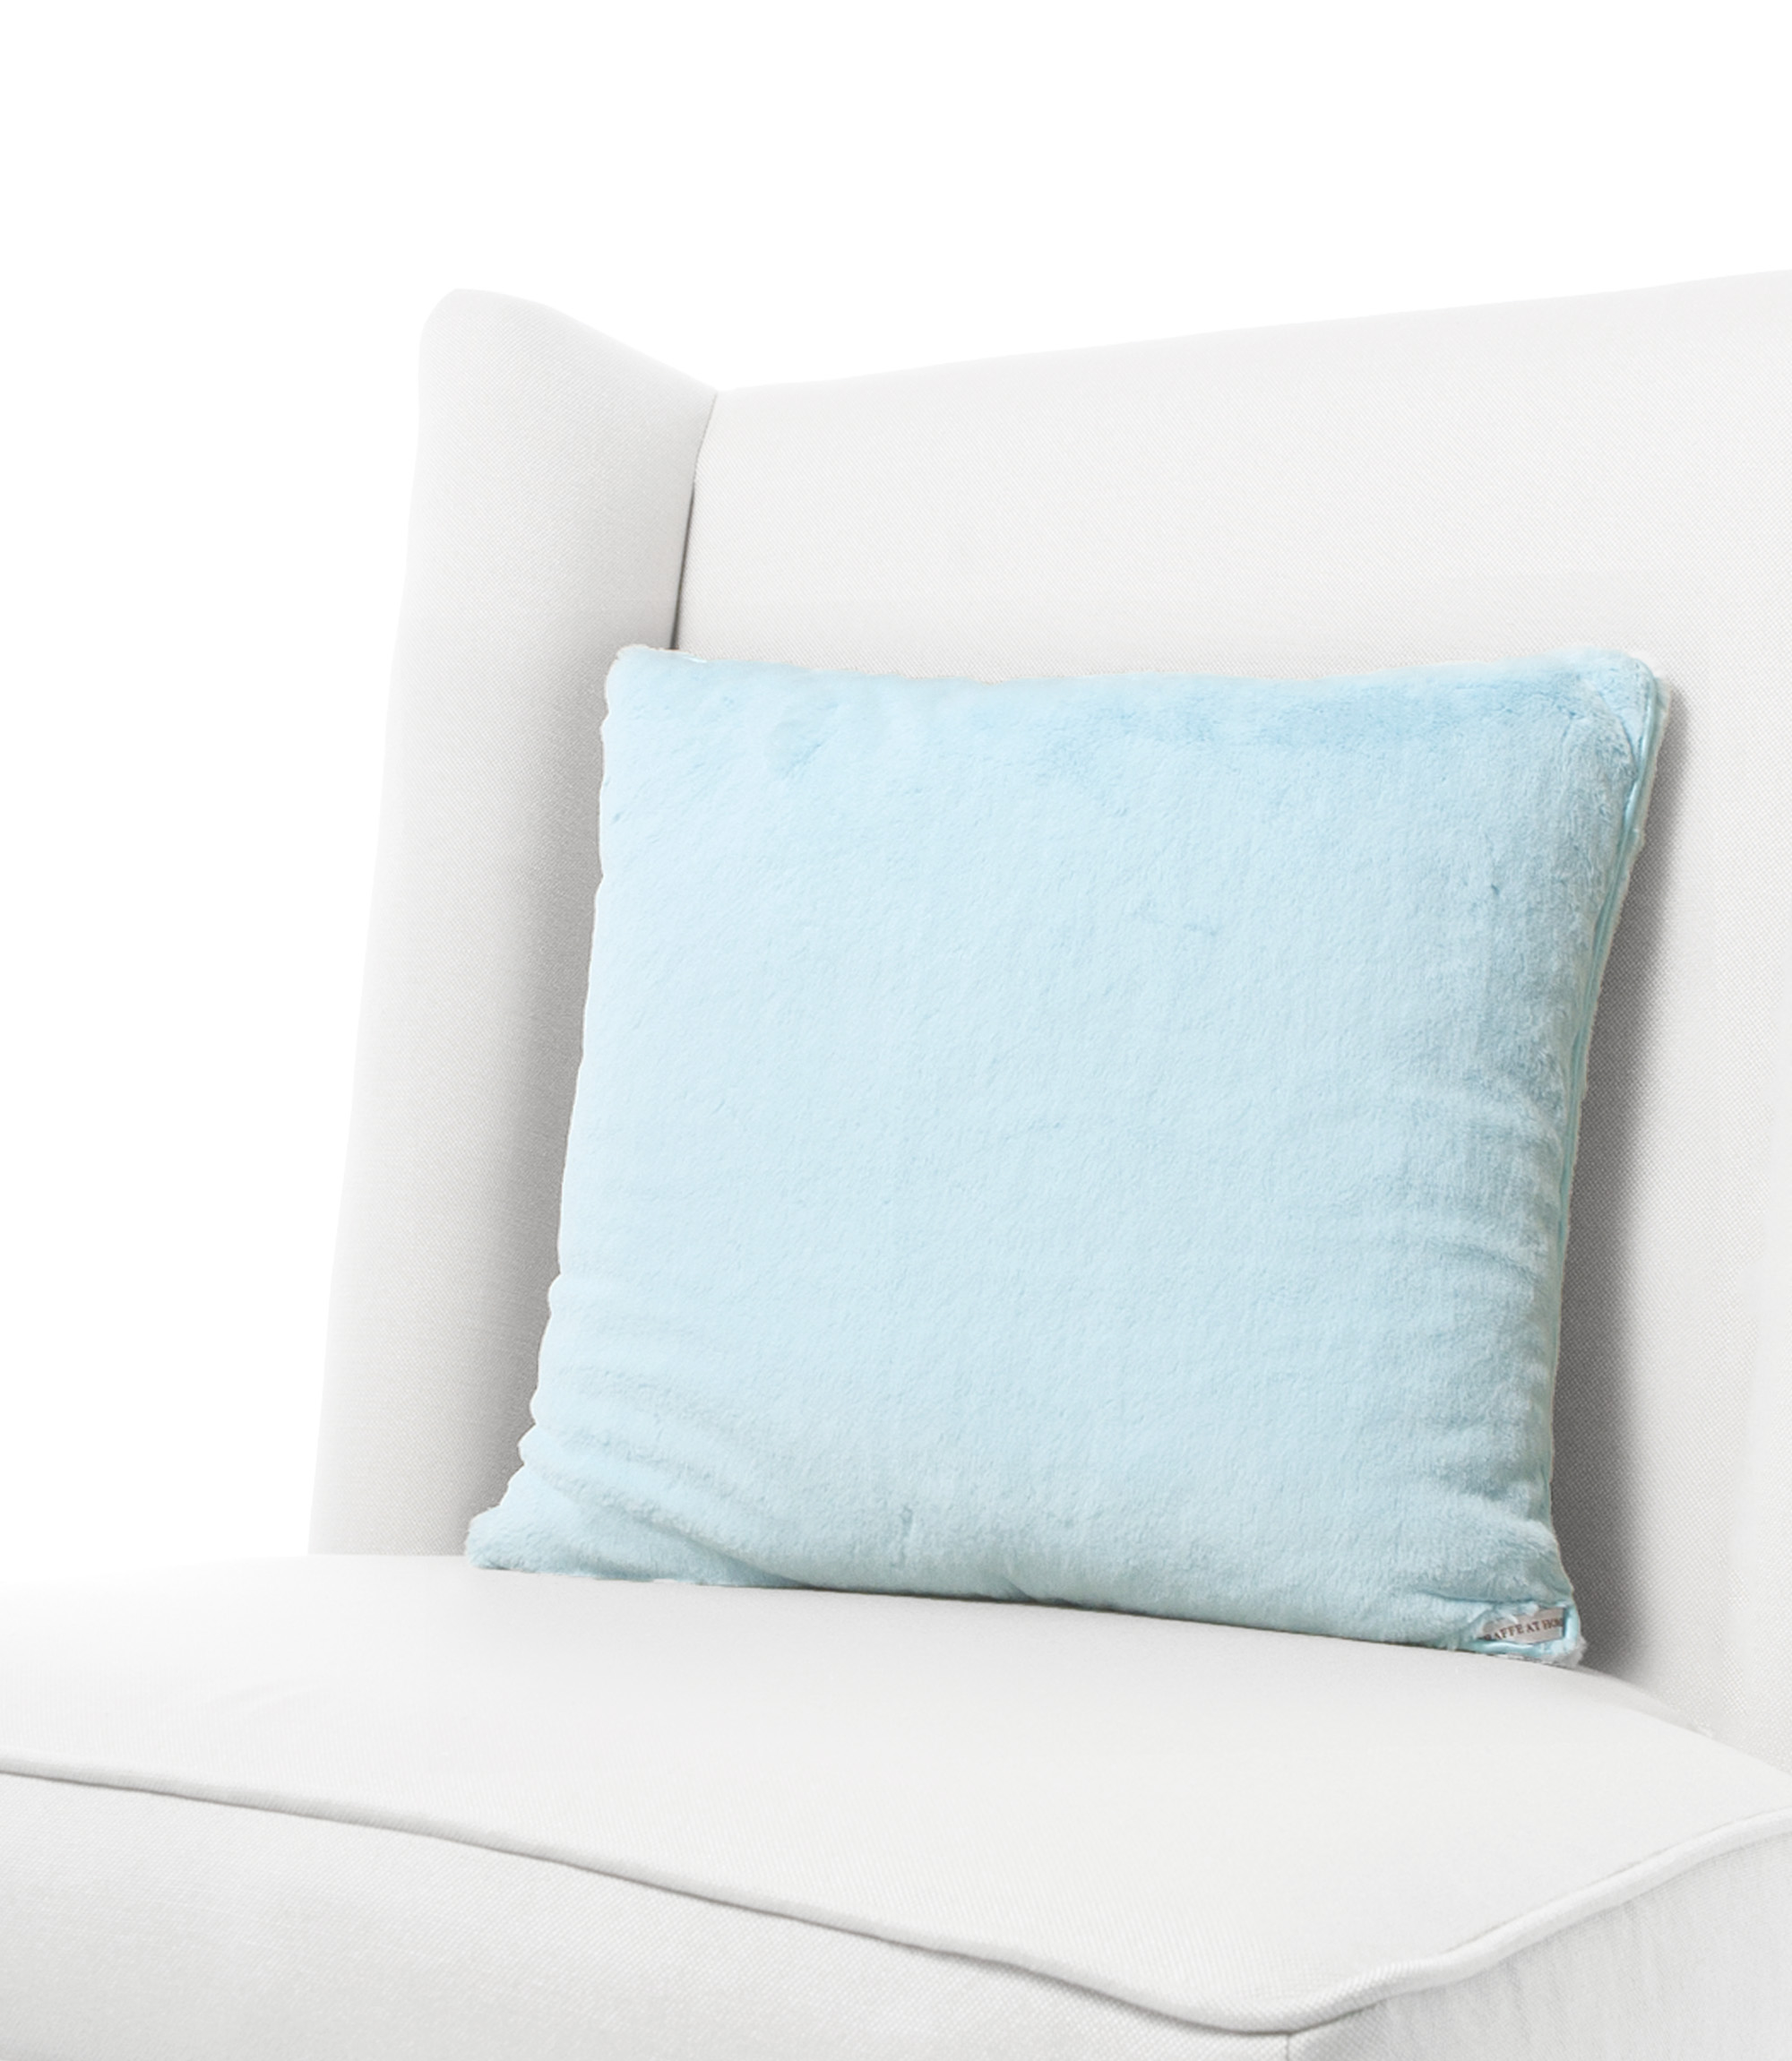 Luxury Throw Pillows images